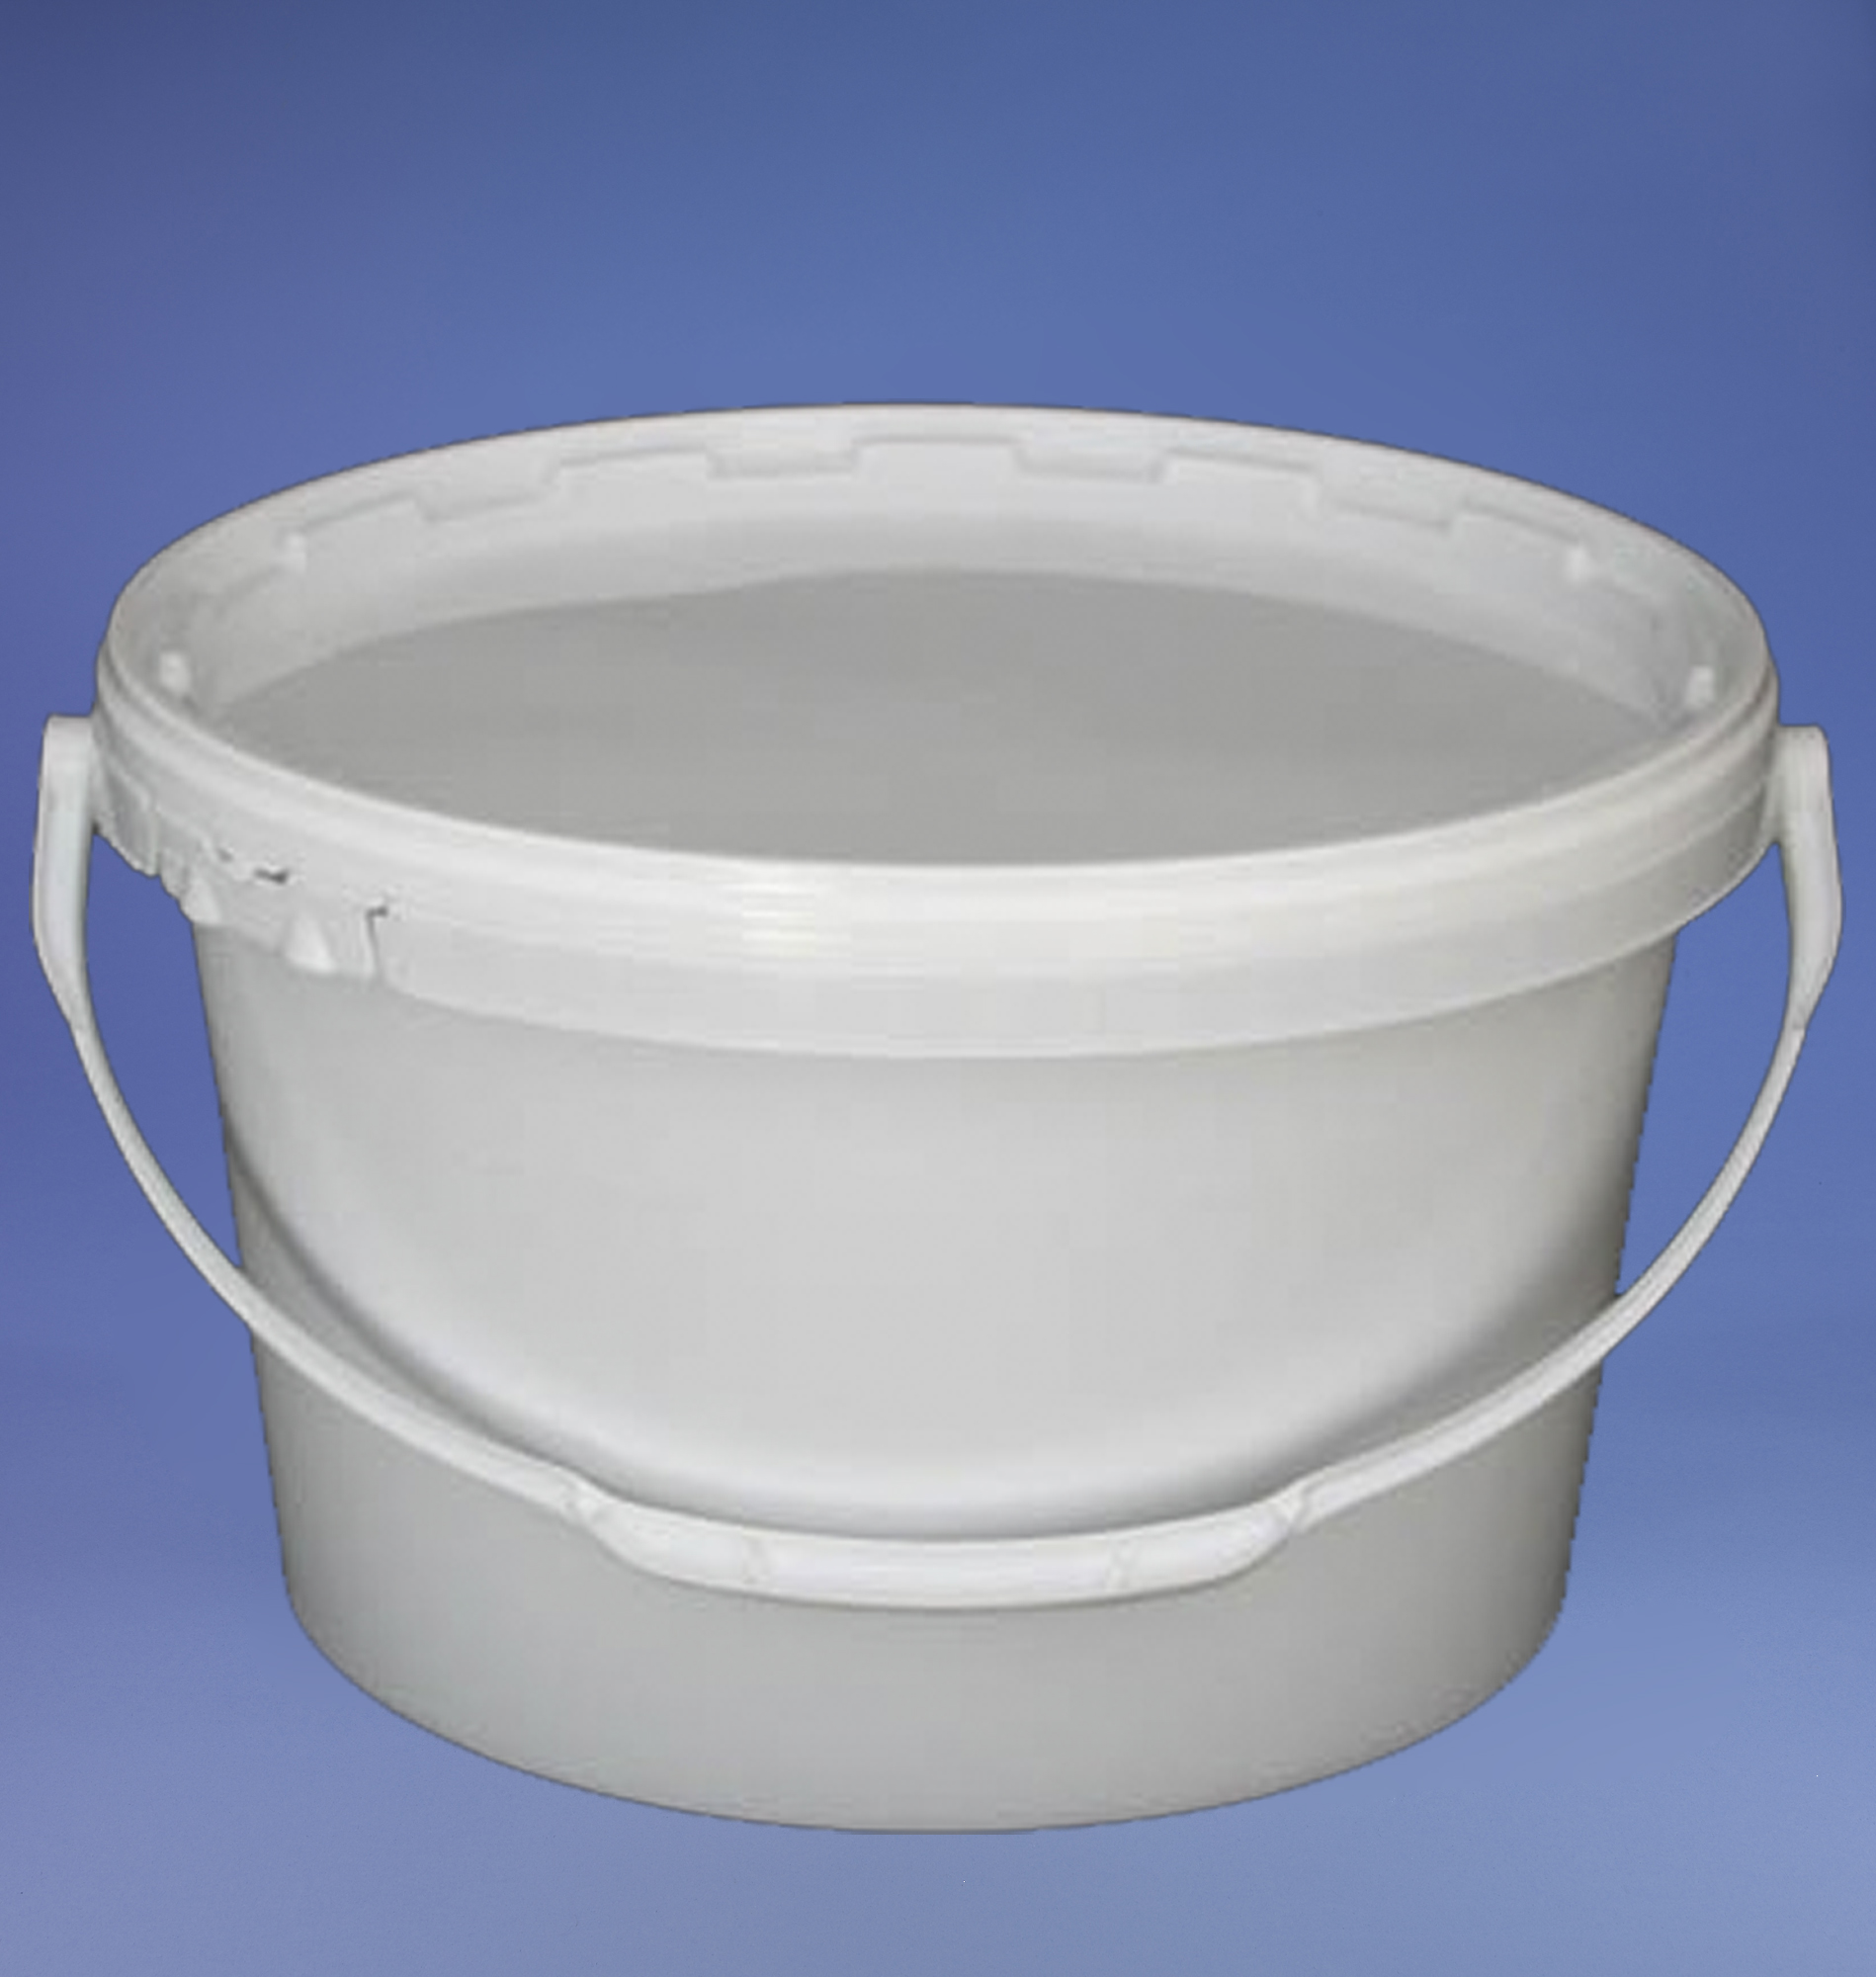 PB18OW Oval Bucket 18.9L